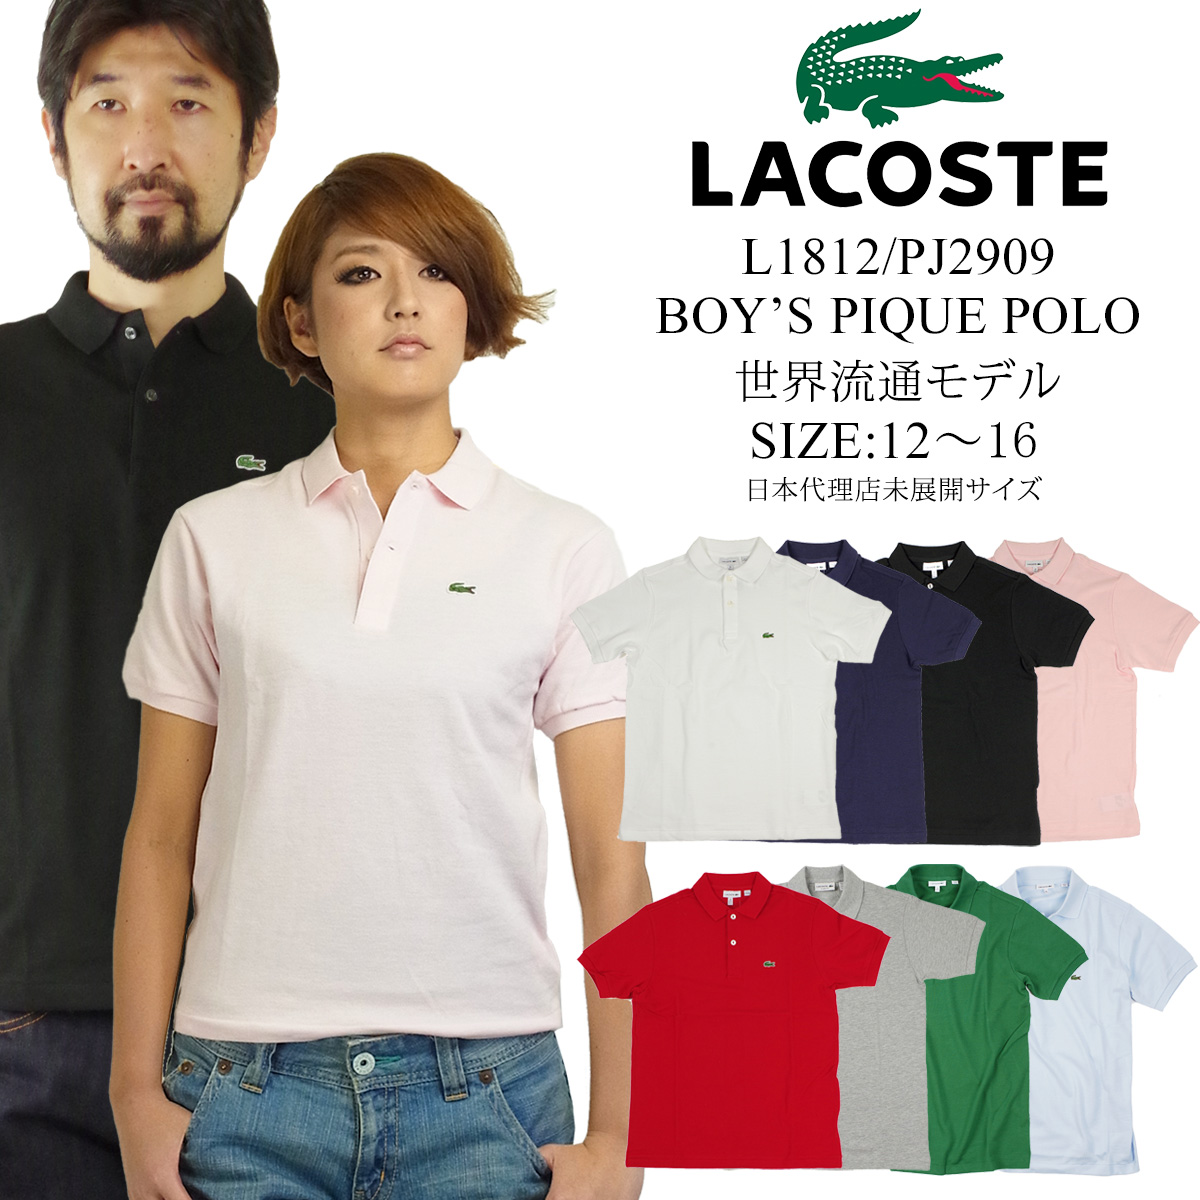 2b87fb5fddc29 Lacoste LACOSTE PJ2909/L1812 Boys short sleeves polo shirt world  circulation model (fawn Classic Pique Polo)